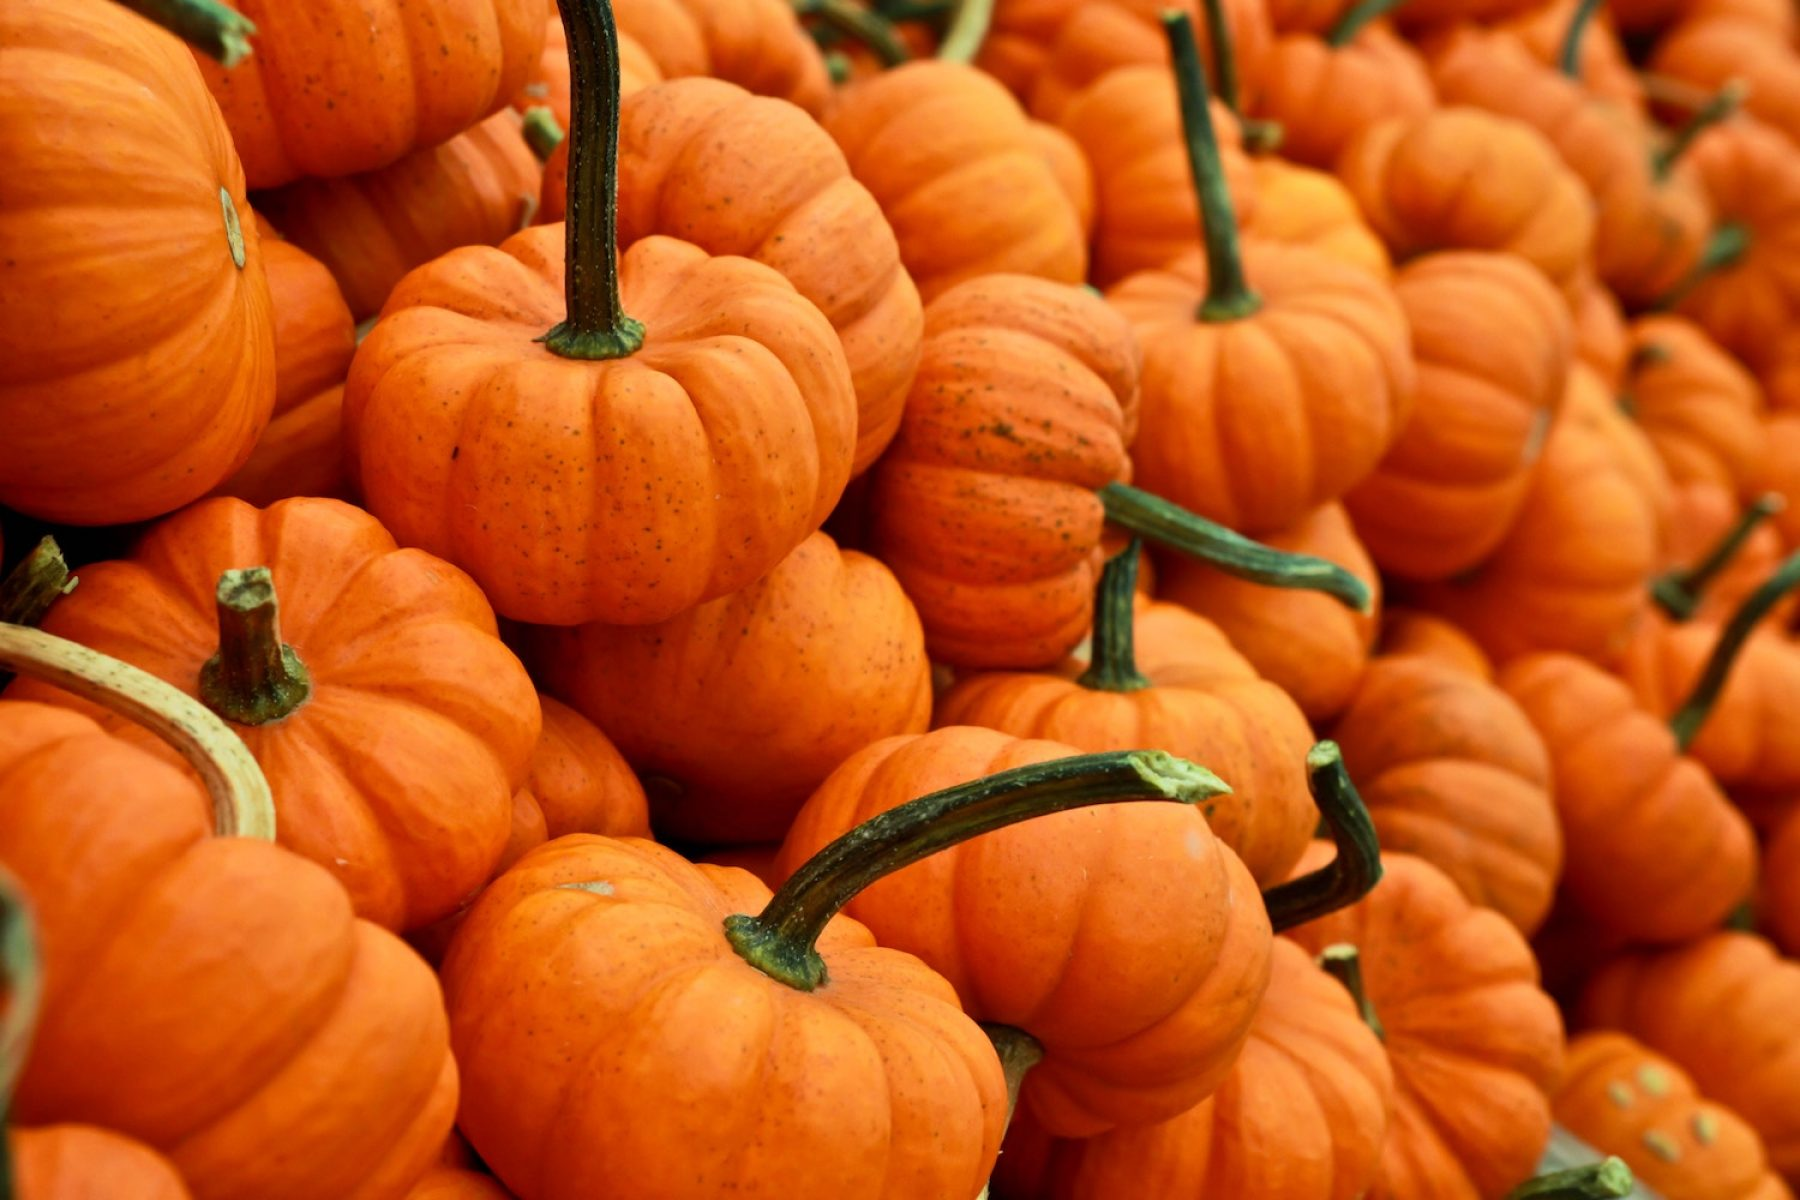 Image for 'Cherish, don't chuck your Halloween pumpkins' urges charity